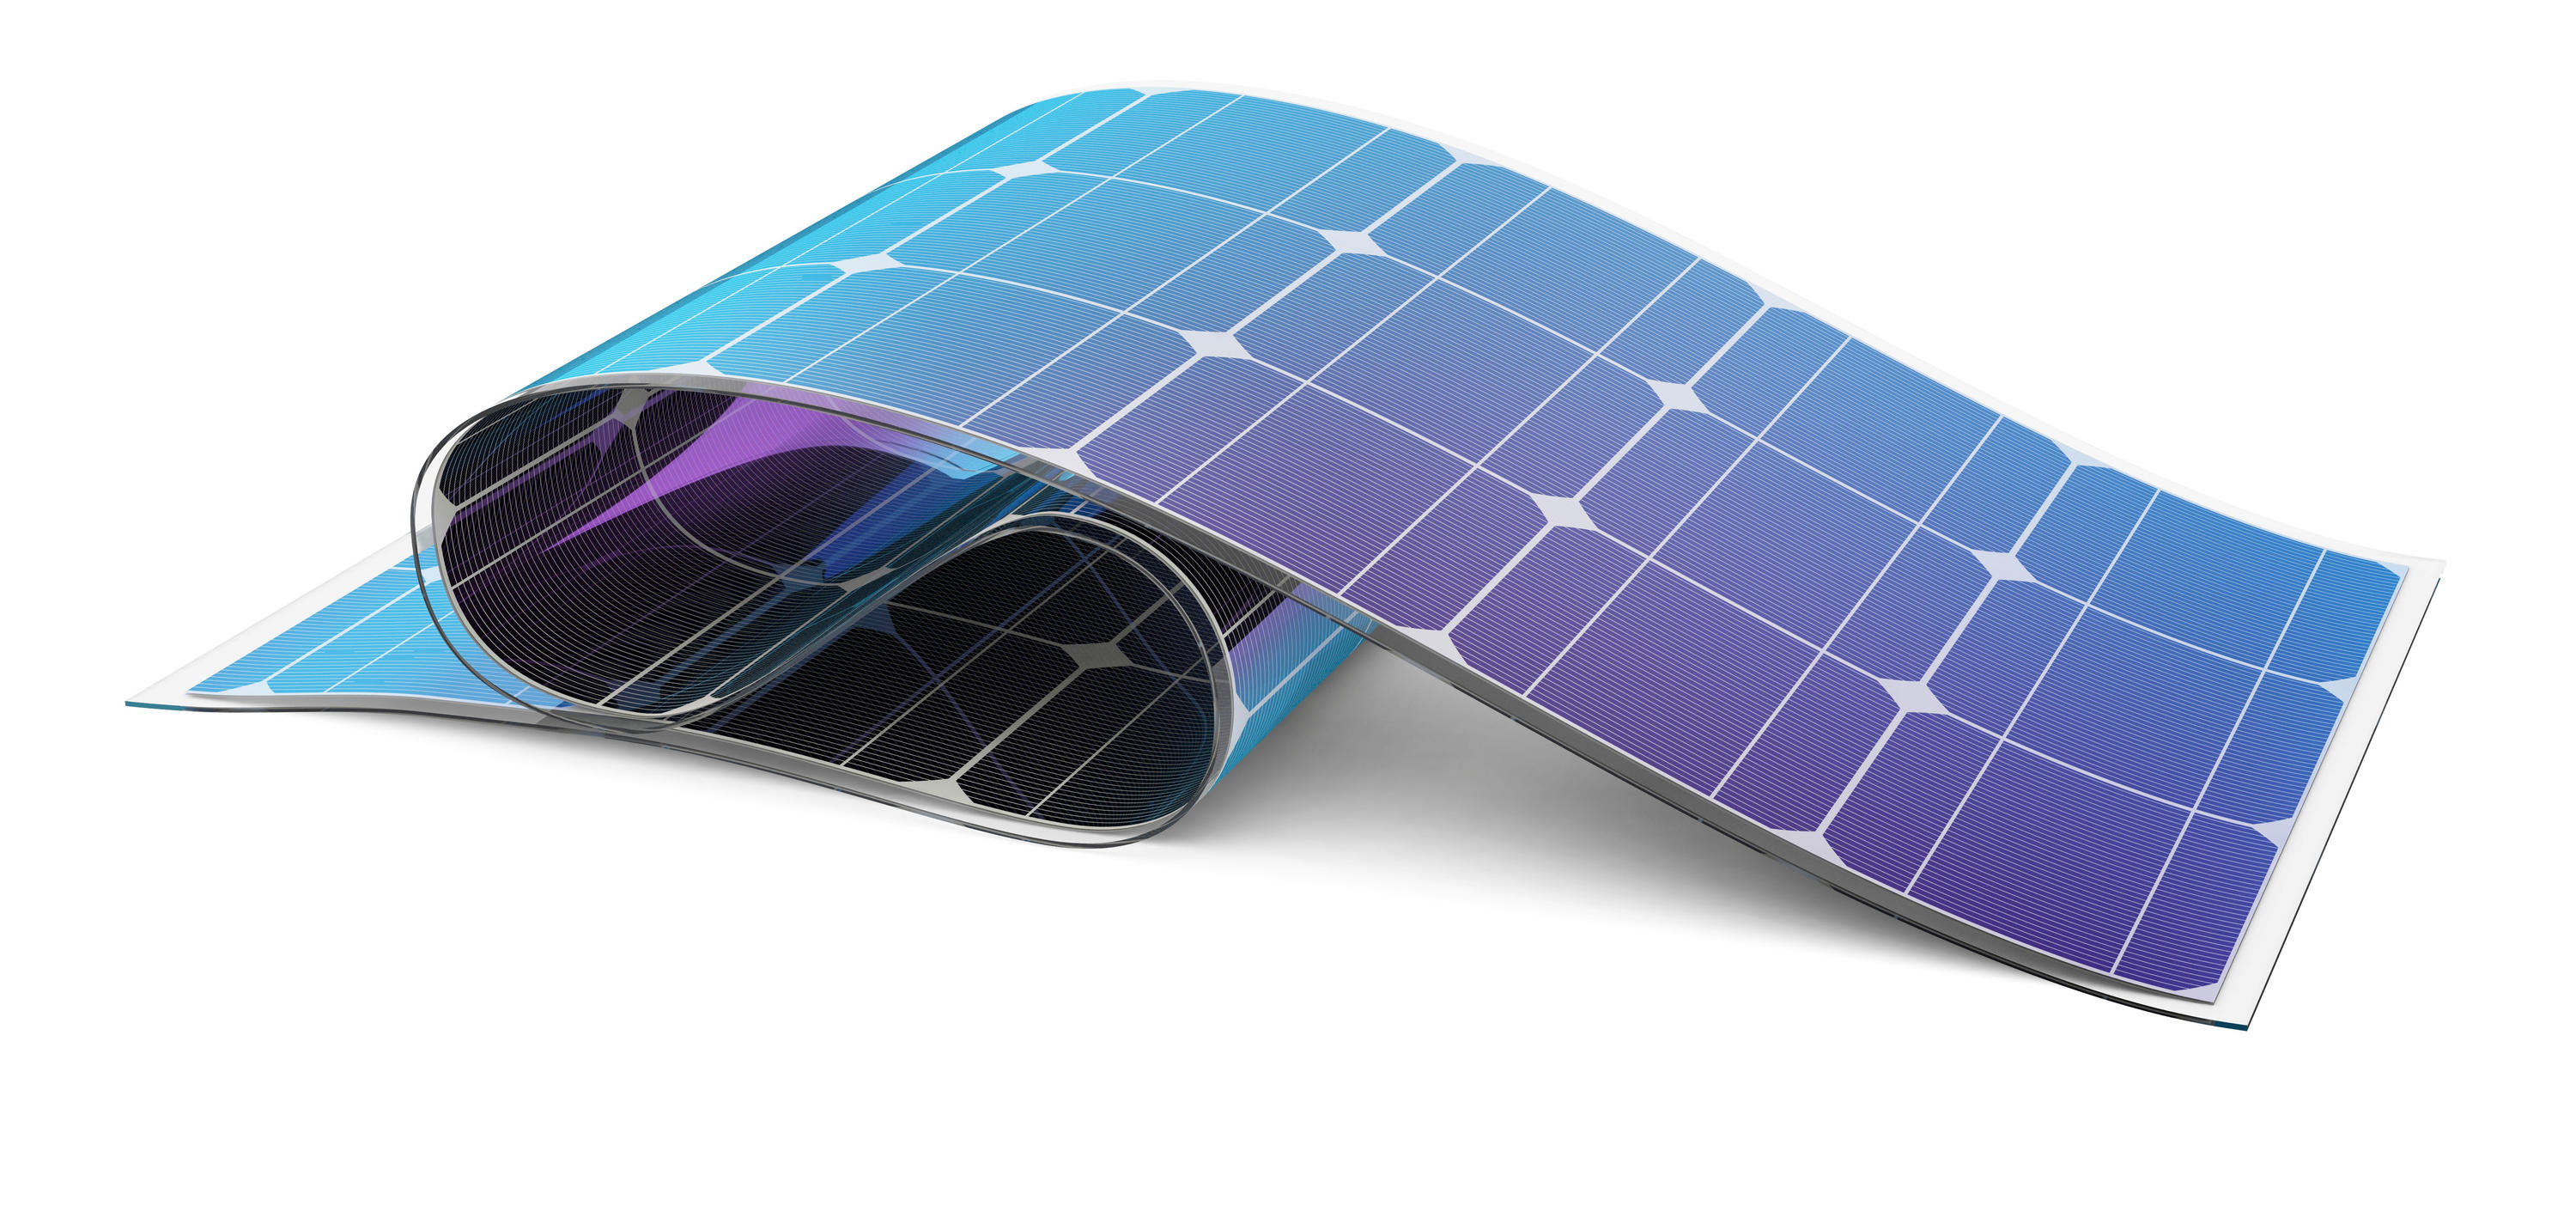 An illustration of a flexible, plastic solar cell.